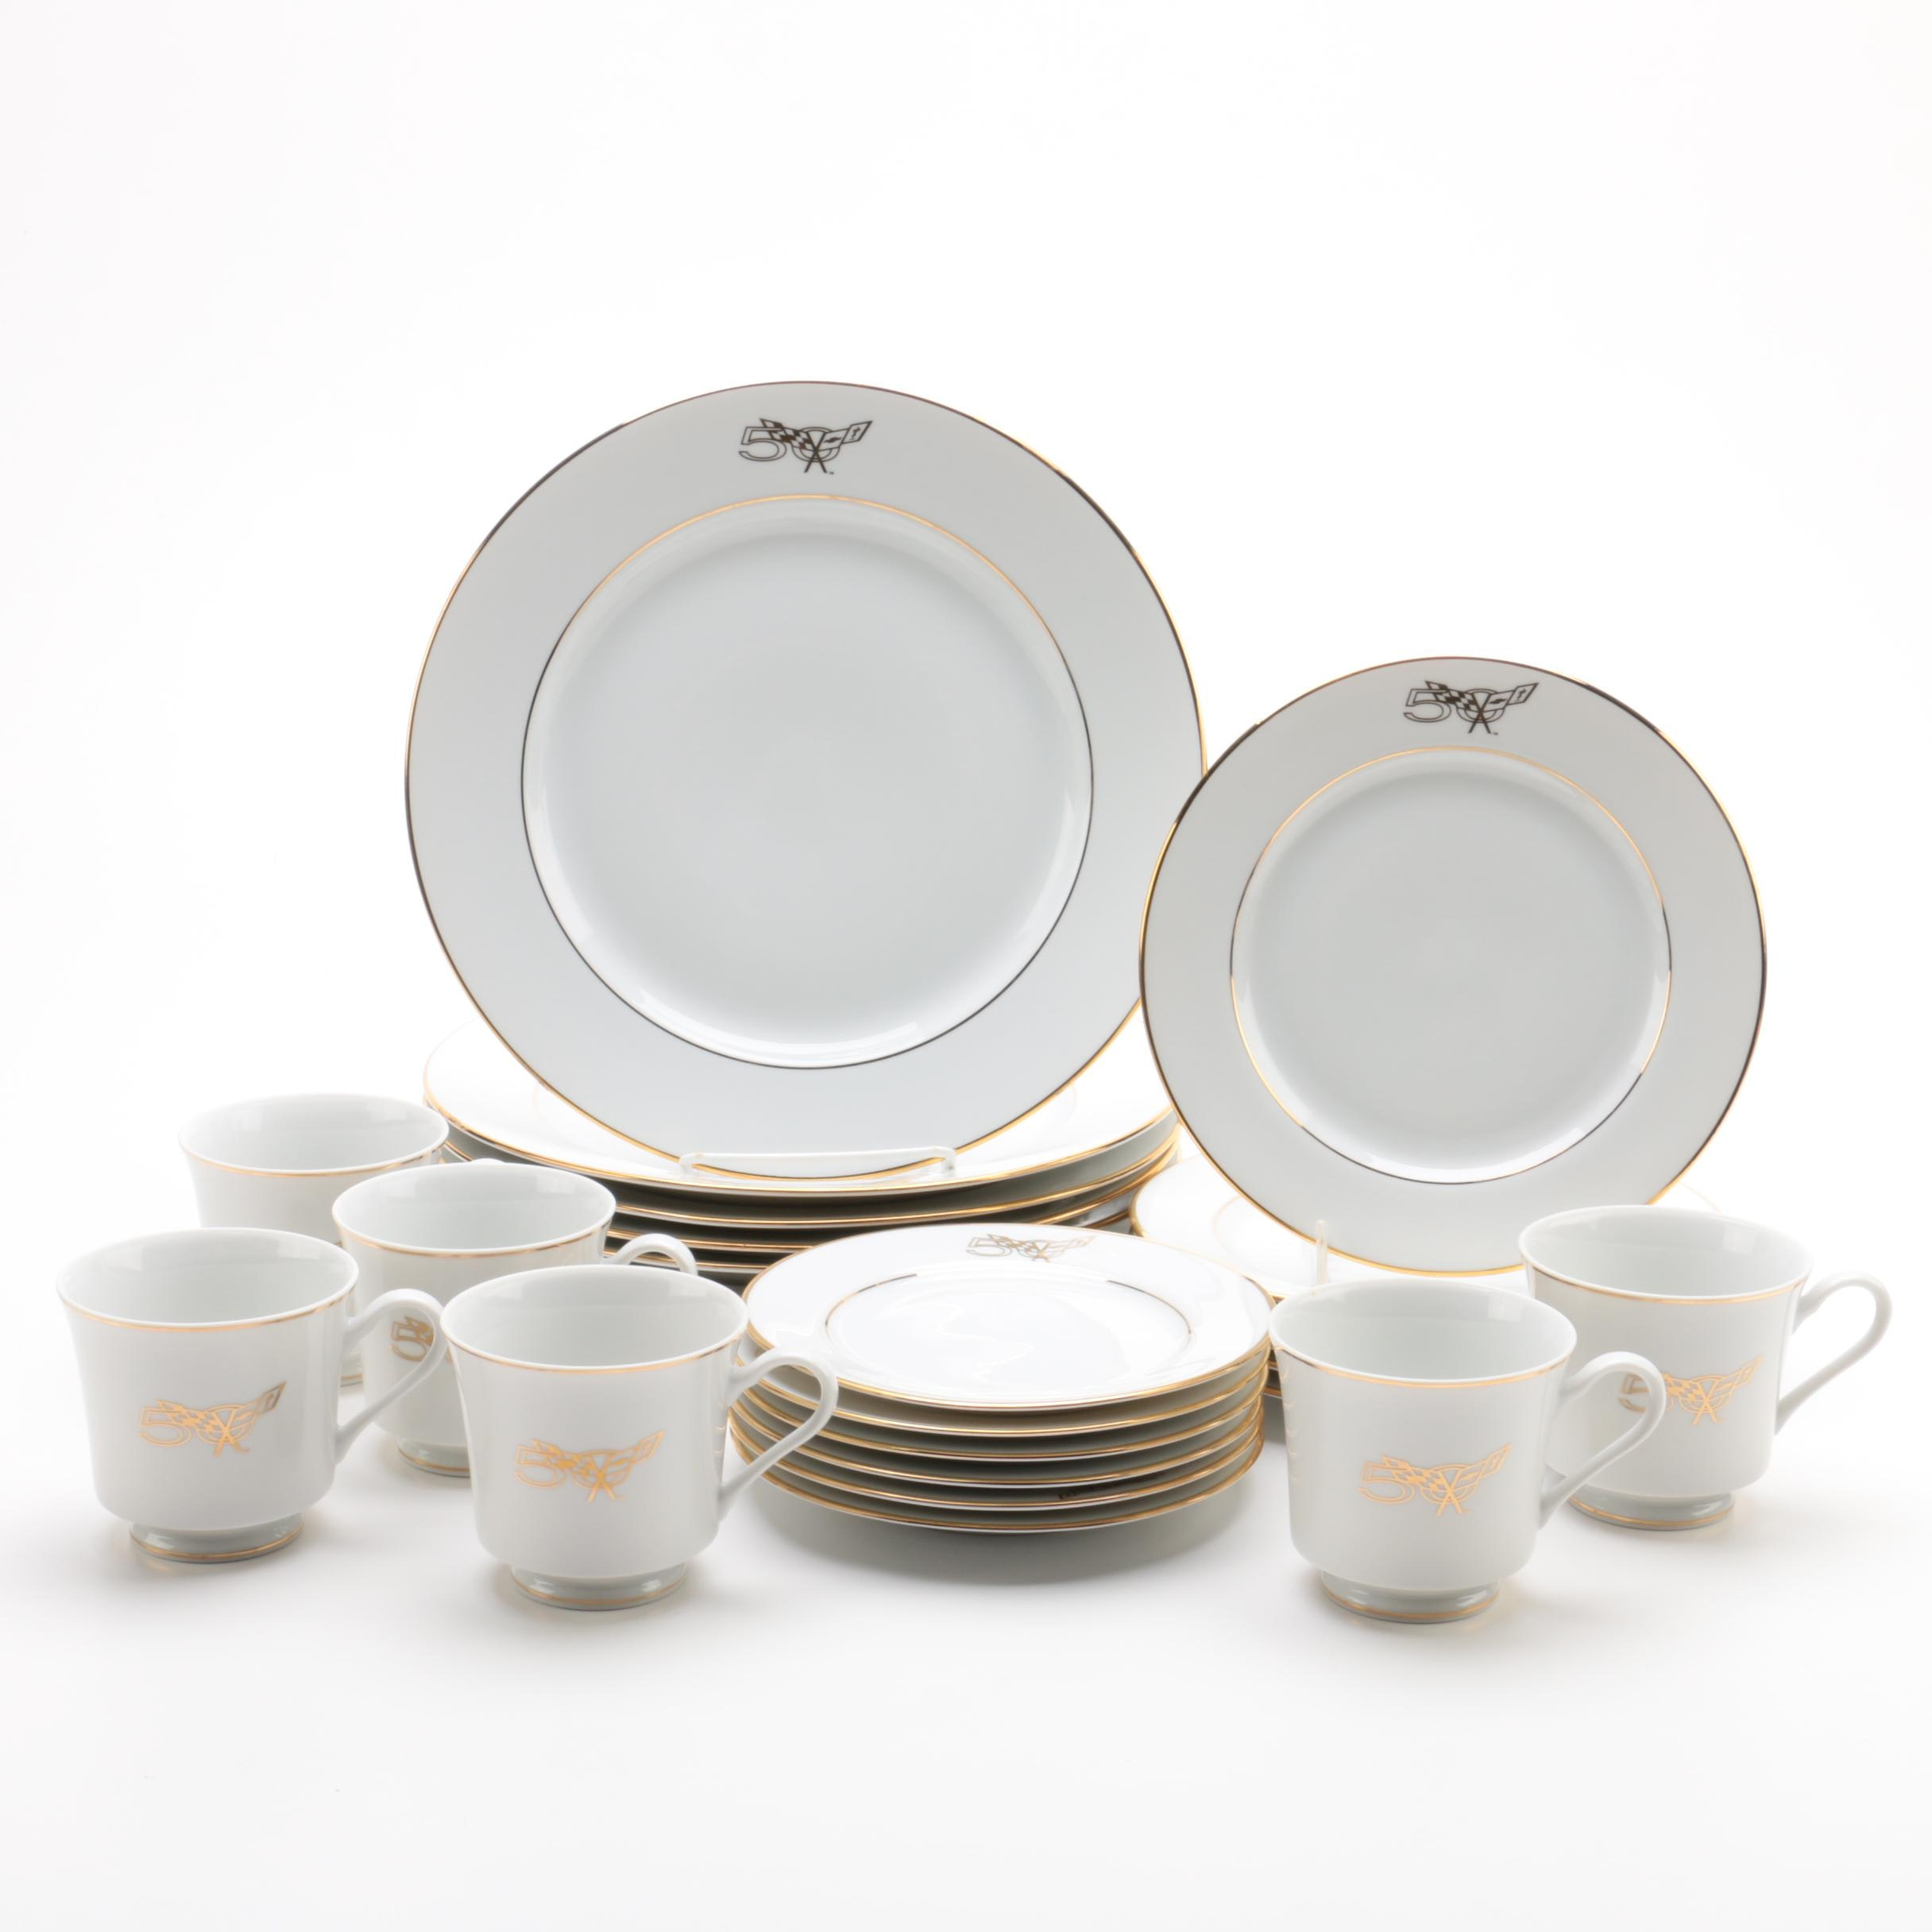 sc 1 st  EBTH.com & Porcelain Dinnerware Commemorating the 50th Anniversary of Corvette ...